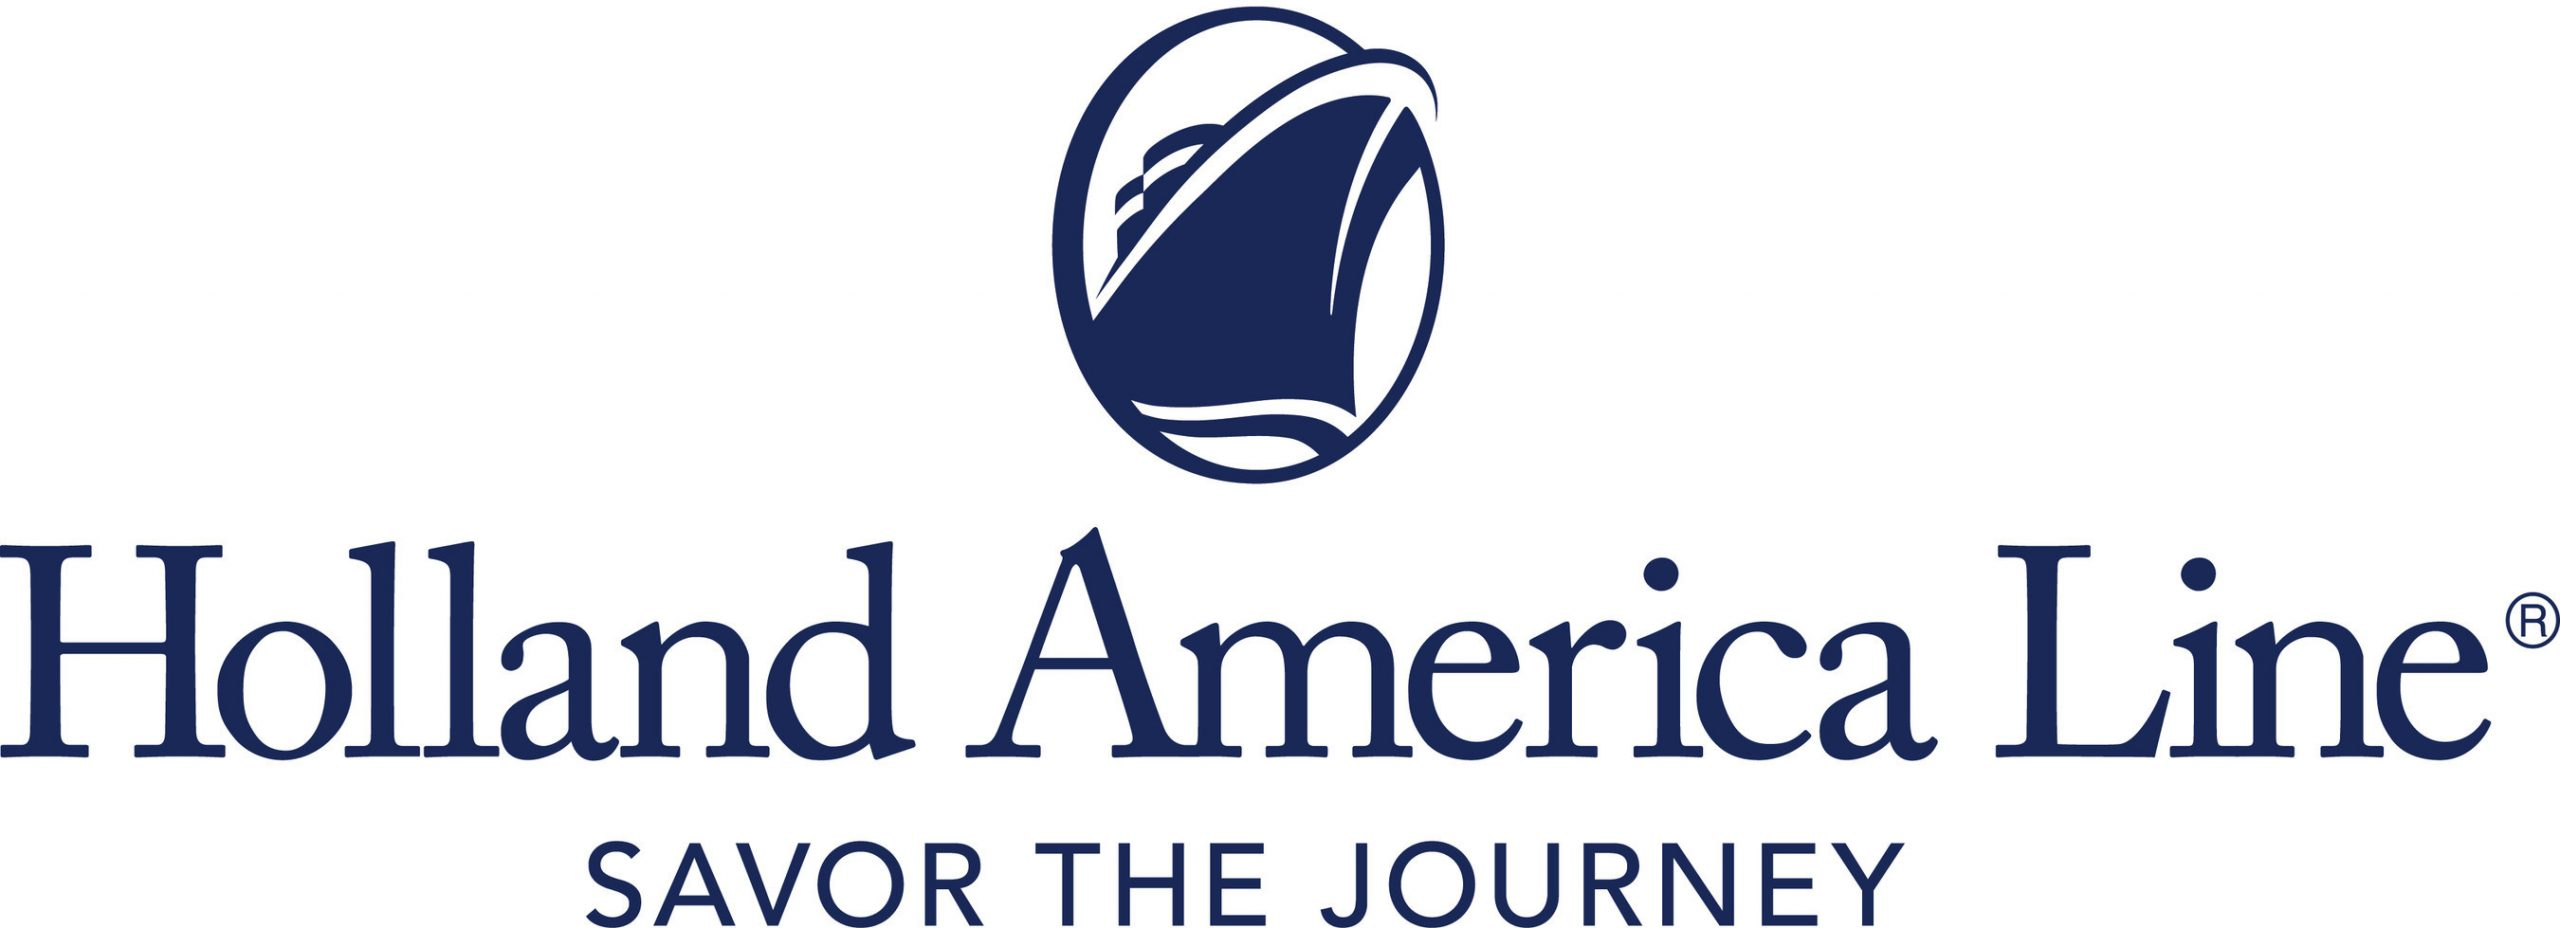 Holland America Line Extends Its Pause of Cruise Operations to All Departures Through Dec. 15, 2020